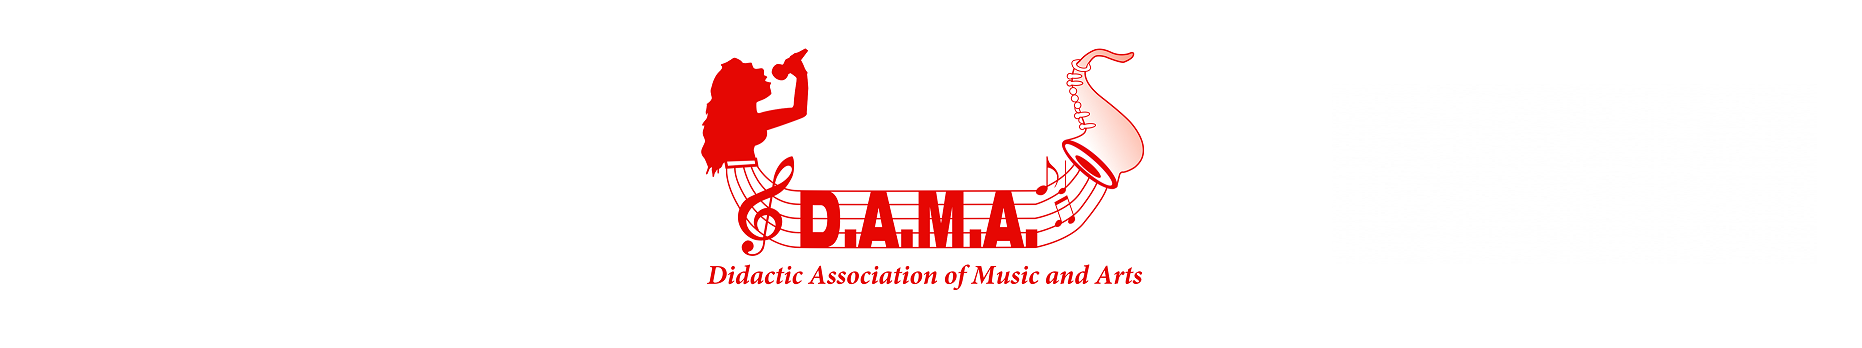 Associazione D.A.M.A. - Didactic Association of Music and Arts - logo